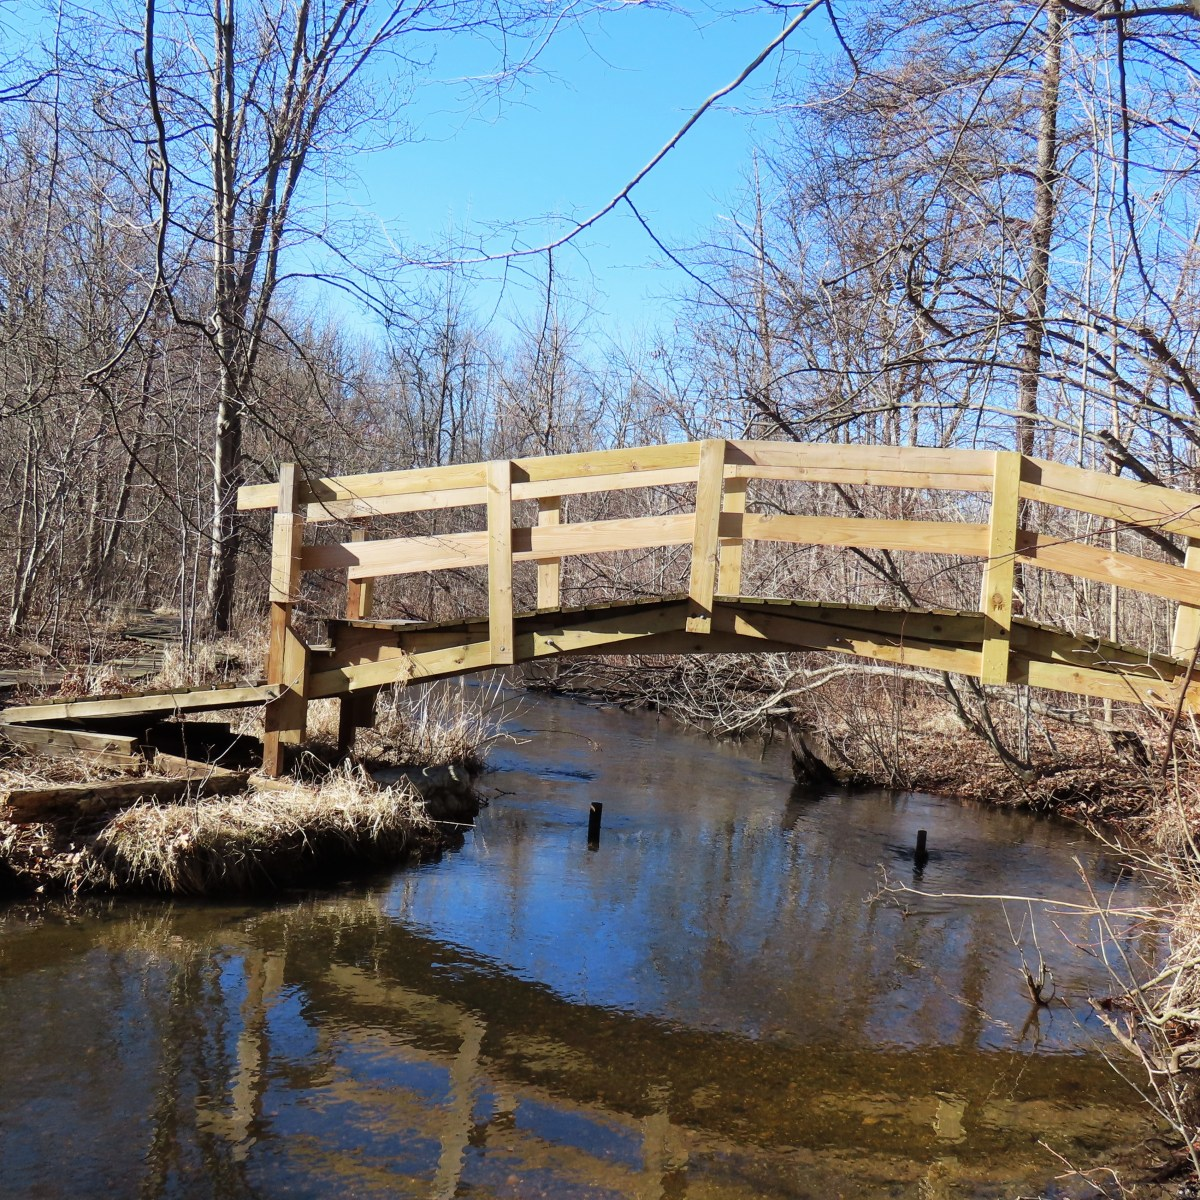 A wooden bridge over a slow-moving stream